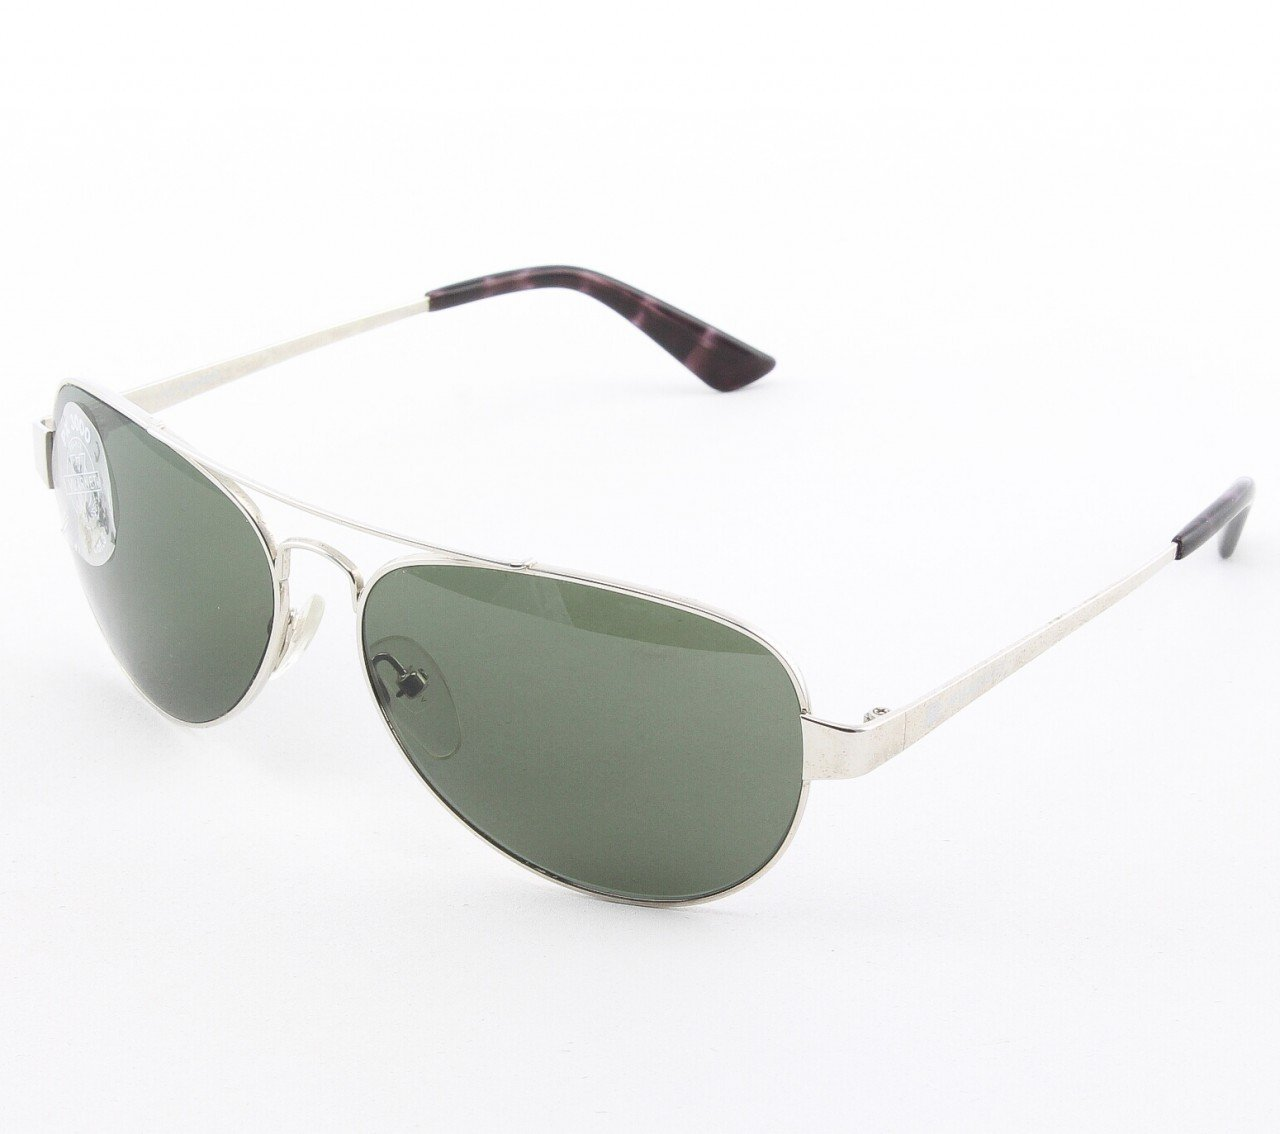 Vuarnet VL 1050 Uni Aviator Sunglasses Col. Silver with Green Grey PX3000 Lenses